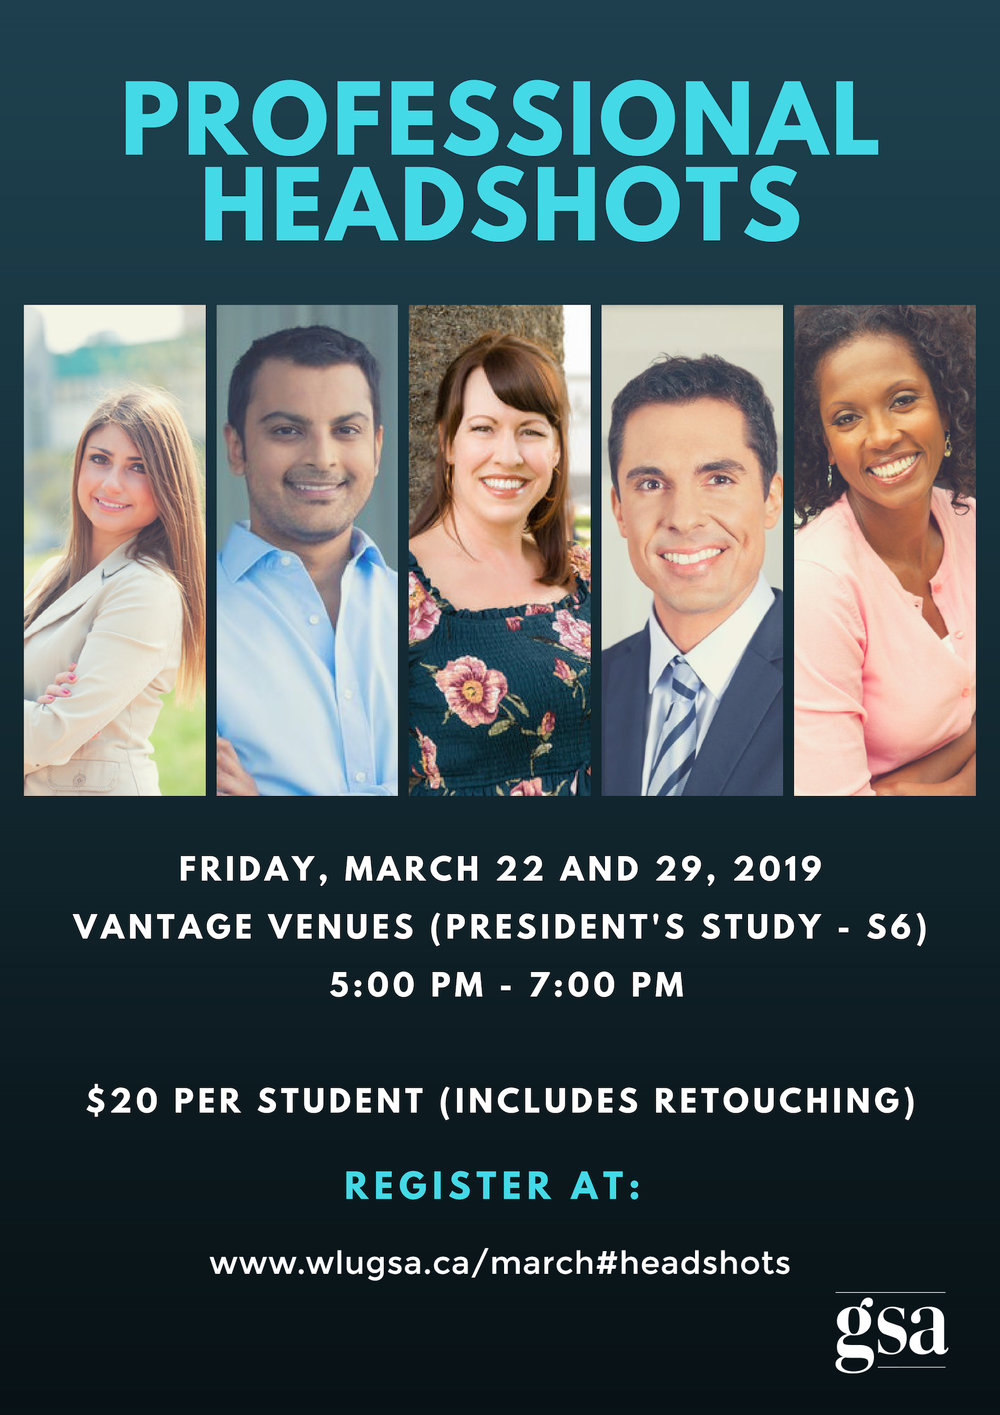 Professional Headshots. Friday, March 22 and 29, 2019. Vantage Venues (President's Study - S6) 5-7 pm. $20 per student (includes retouching). Register below.